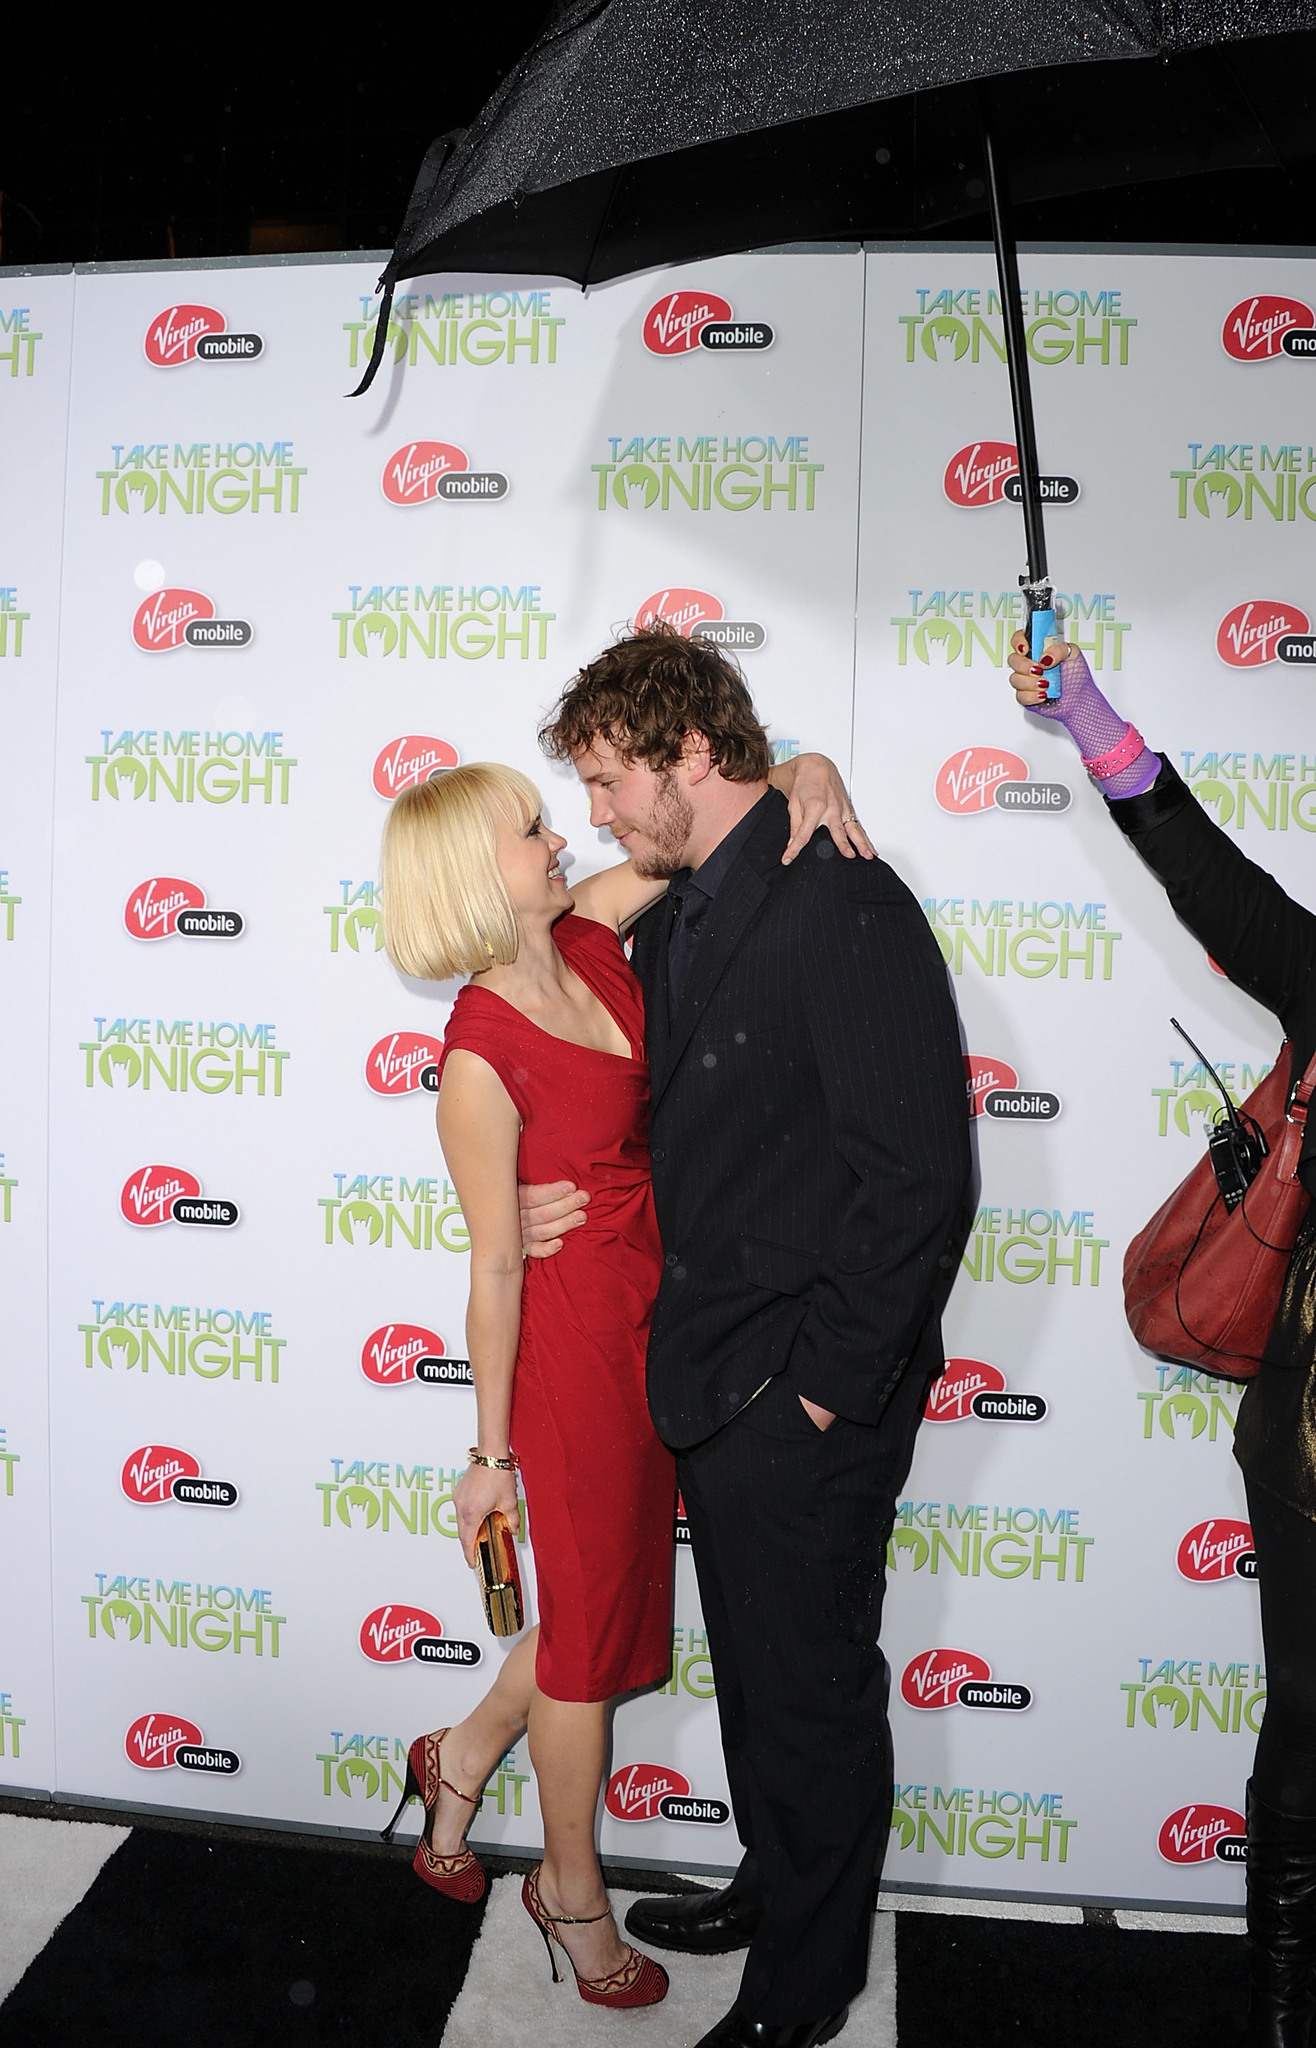 Anna Faris and Chris Pratt at event of Take Me Home Tonight (2011) photo #489219